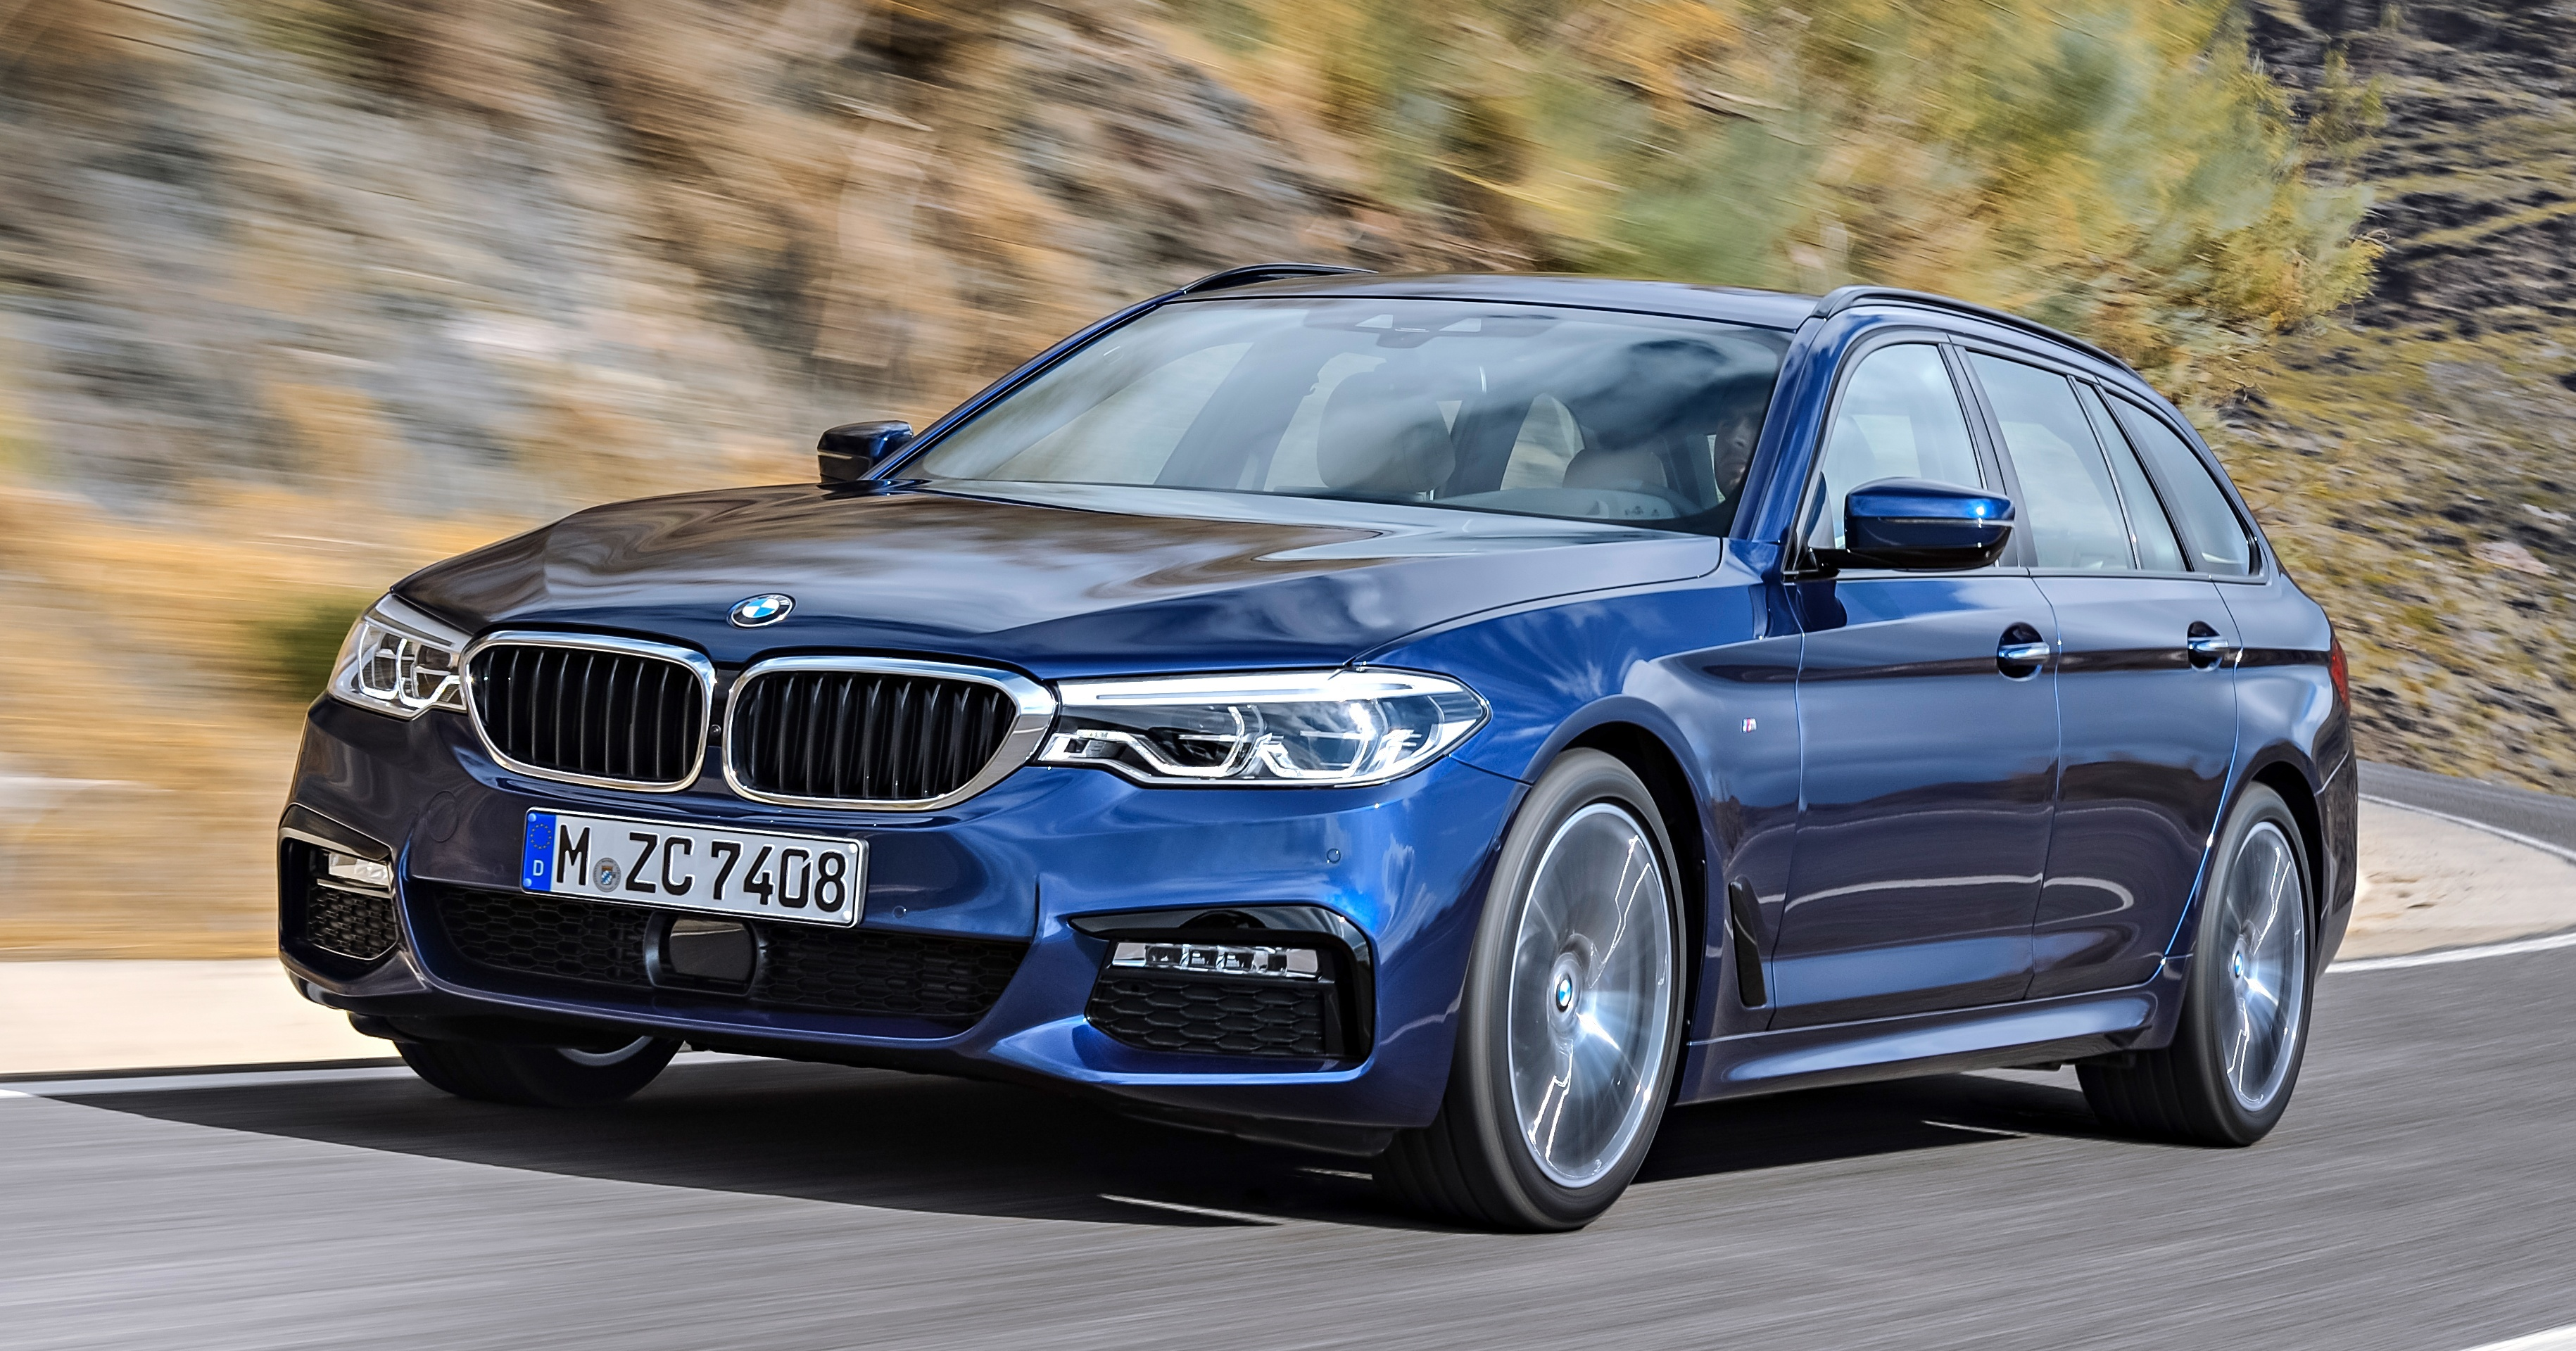 G31 Bmw 5 Series Touring Unveiled 1 700 Litre Boot Image 610126